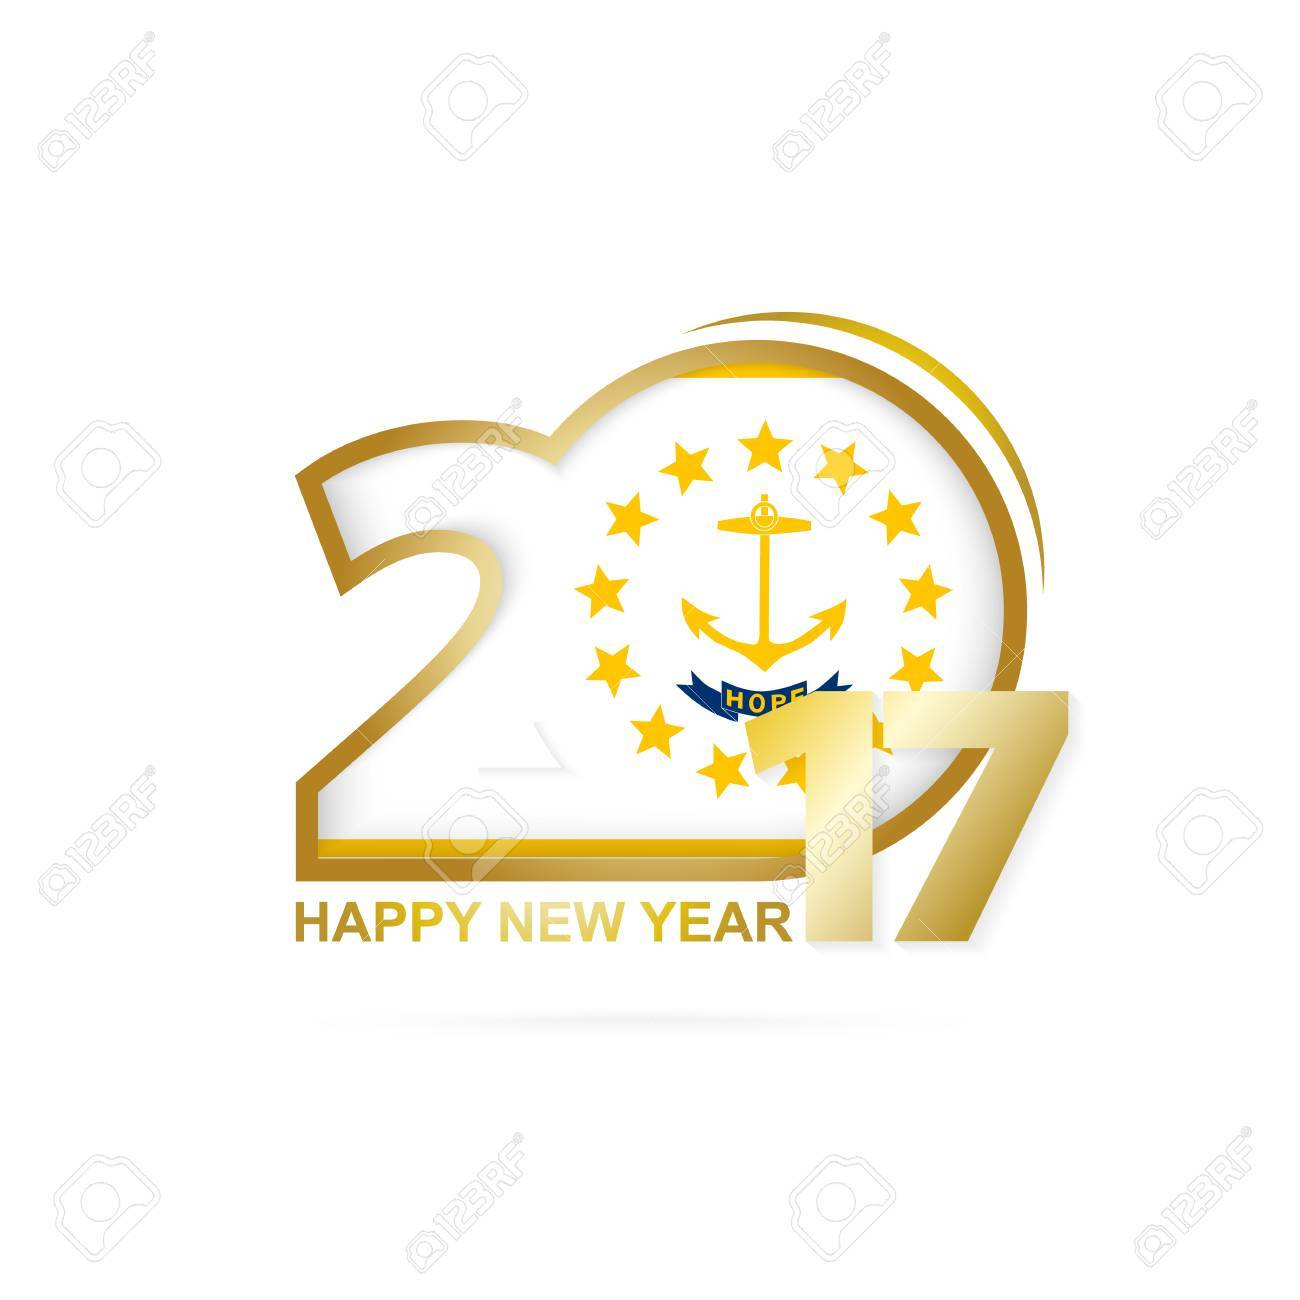 Year 2017 with rhode island state flag pattern happy new year year 2017 with rhode island state flag pattern happy new year design on white background biocorpaavc Choice Image